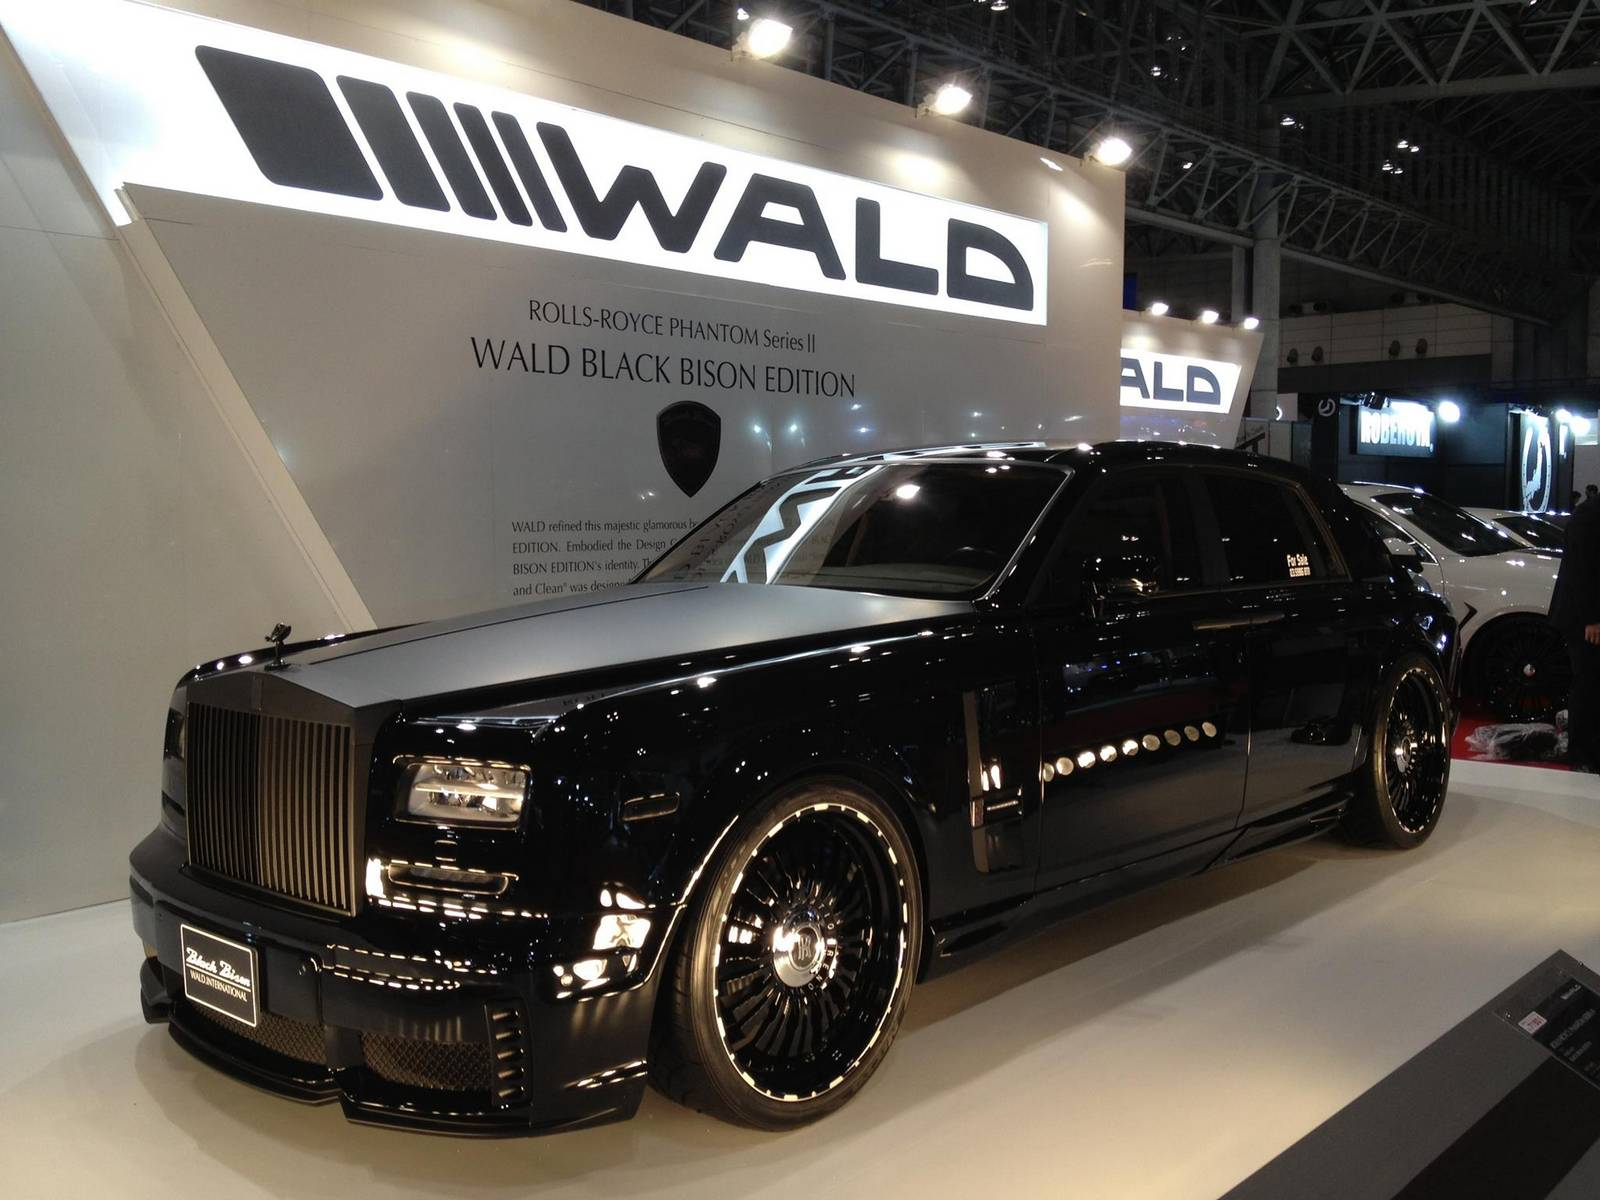 rolls royce phantom japan with Tokyo Auto Salon 2014 Wald International Cars on 177892254004964727 as well Limited Edition Bugatti Veyron Mansory Vivere also Beautiful Portraits Of Popular Tokyo additionally Chrysler 300S Phantom Black moreover 2018 2019 Mercedes Benz Cls Amg In The Image Of The Black Bison By Wald International.